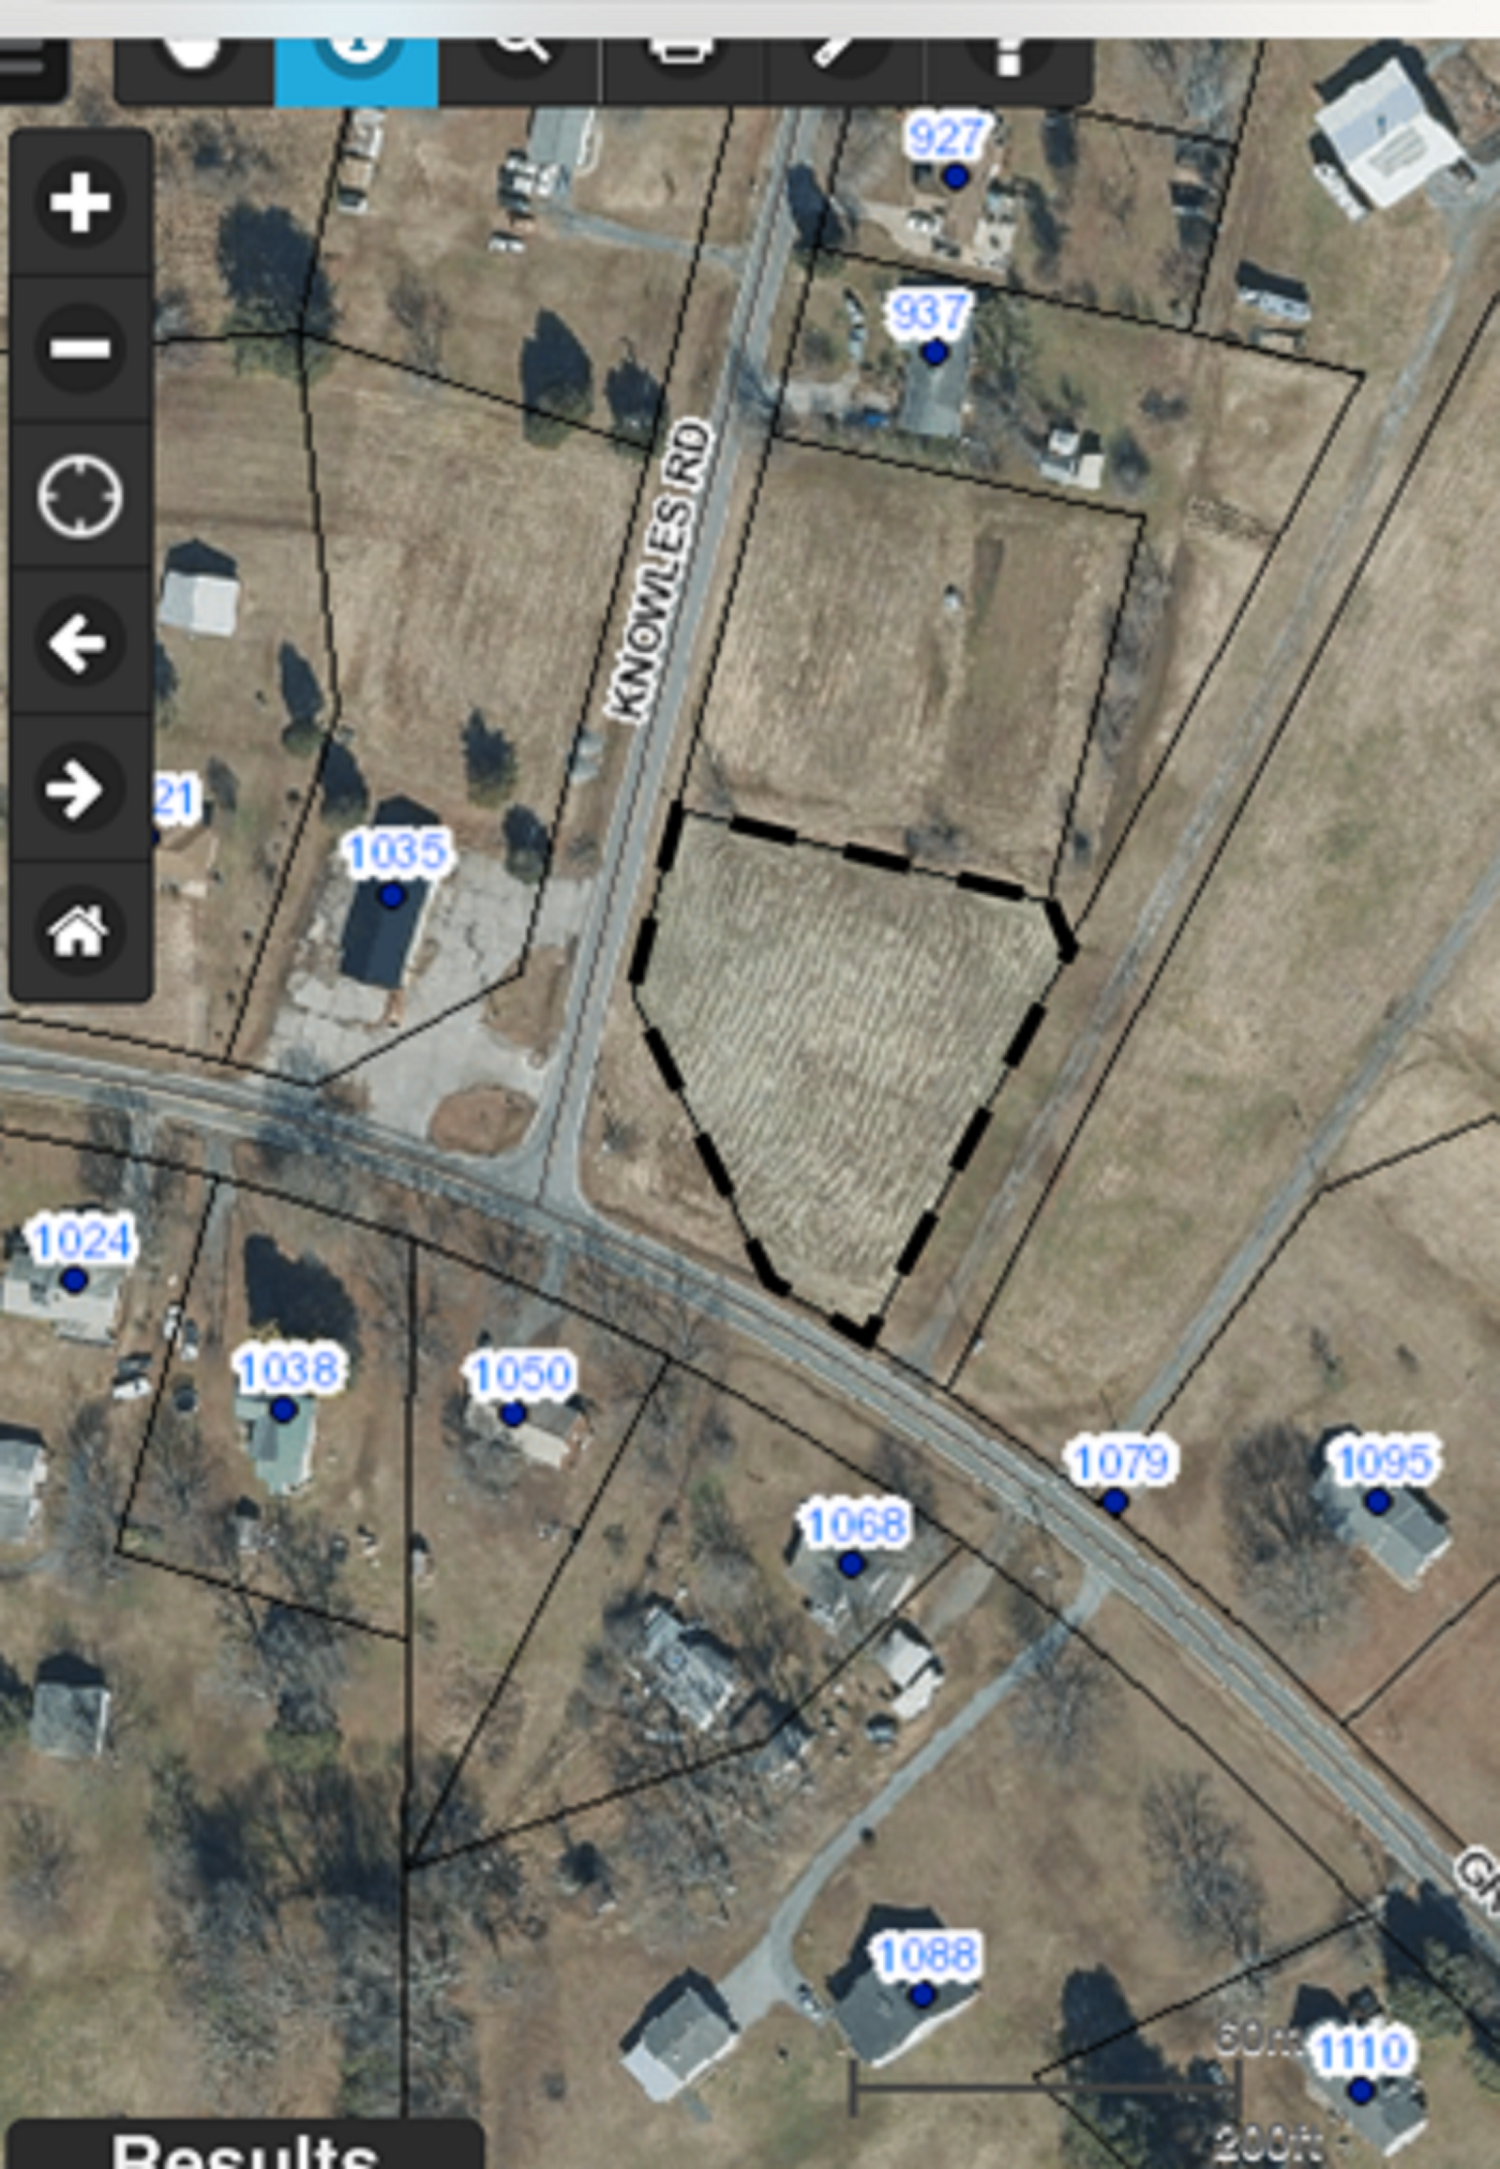 967 Knowles Rd Vacant Lot